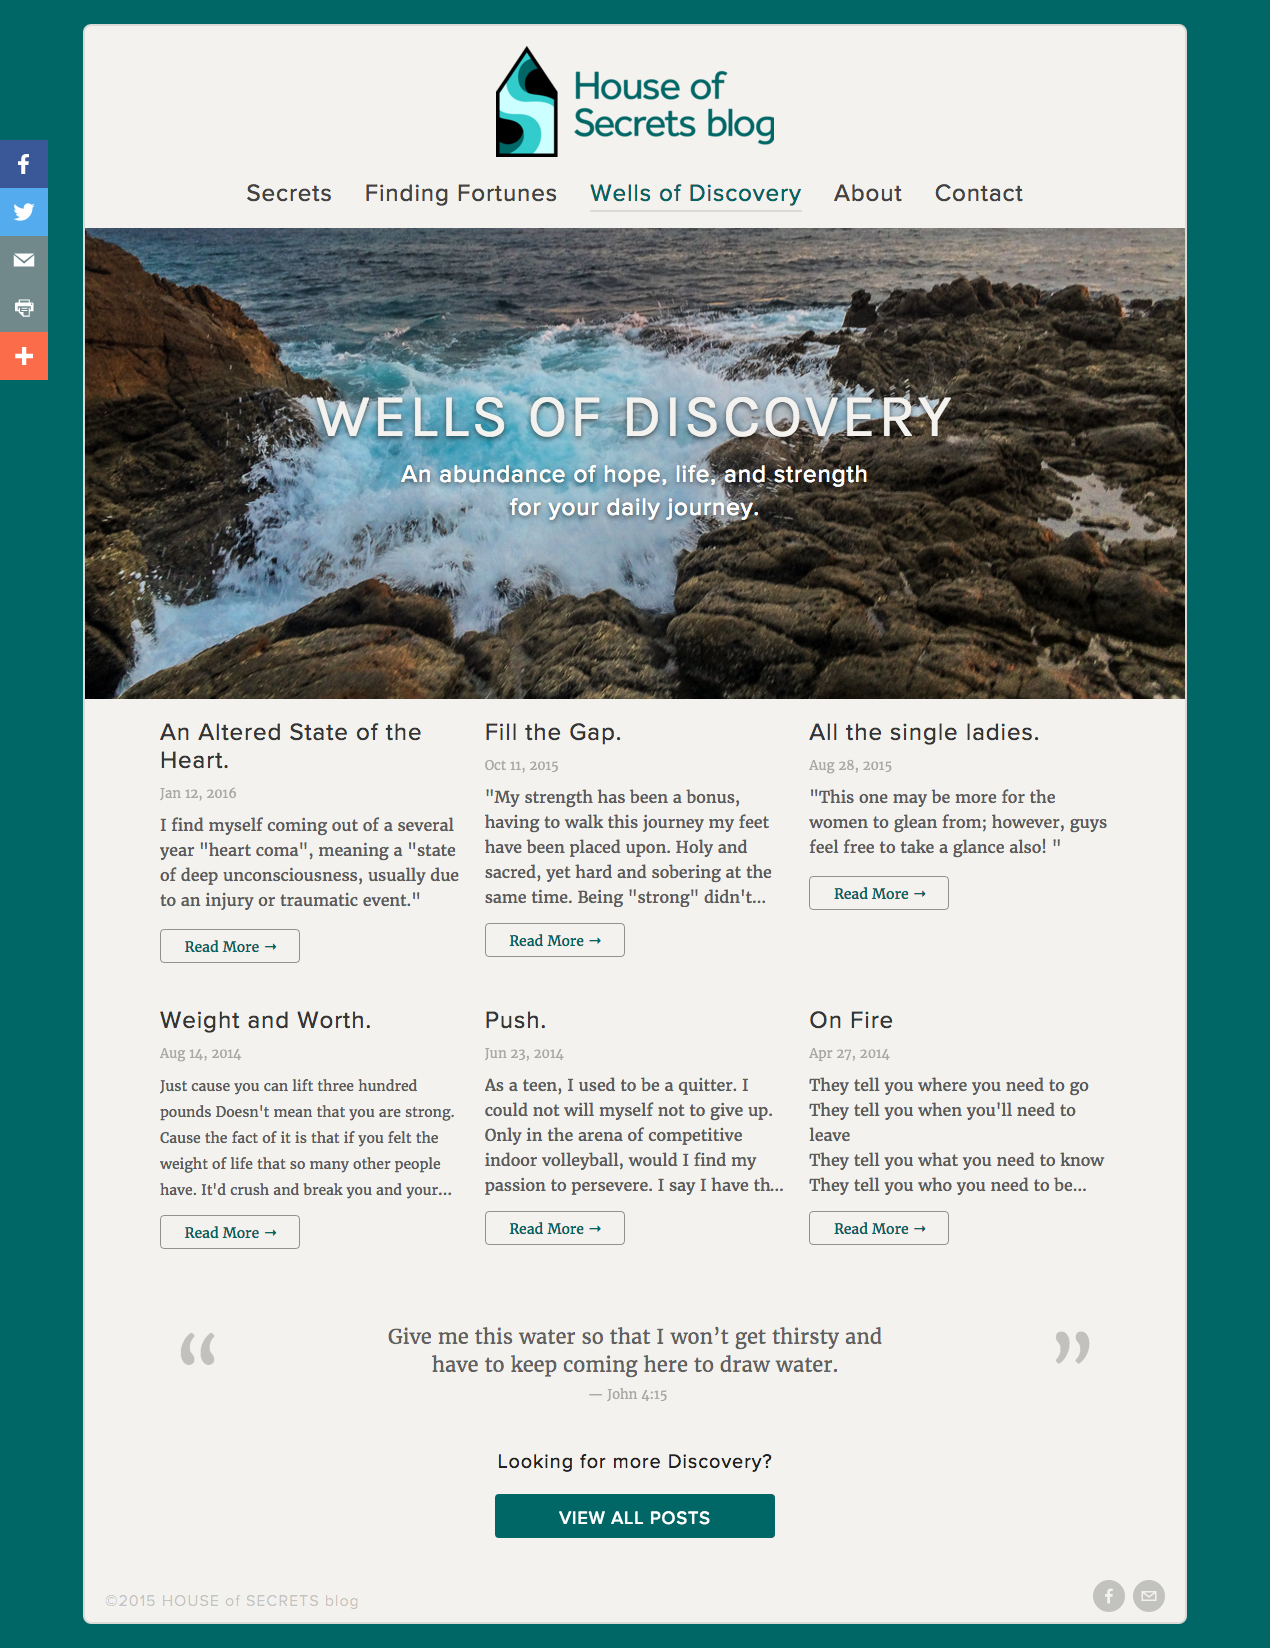 Wells of Discovery